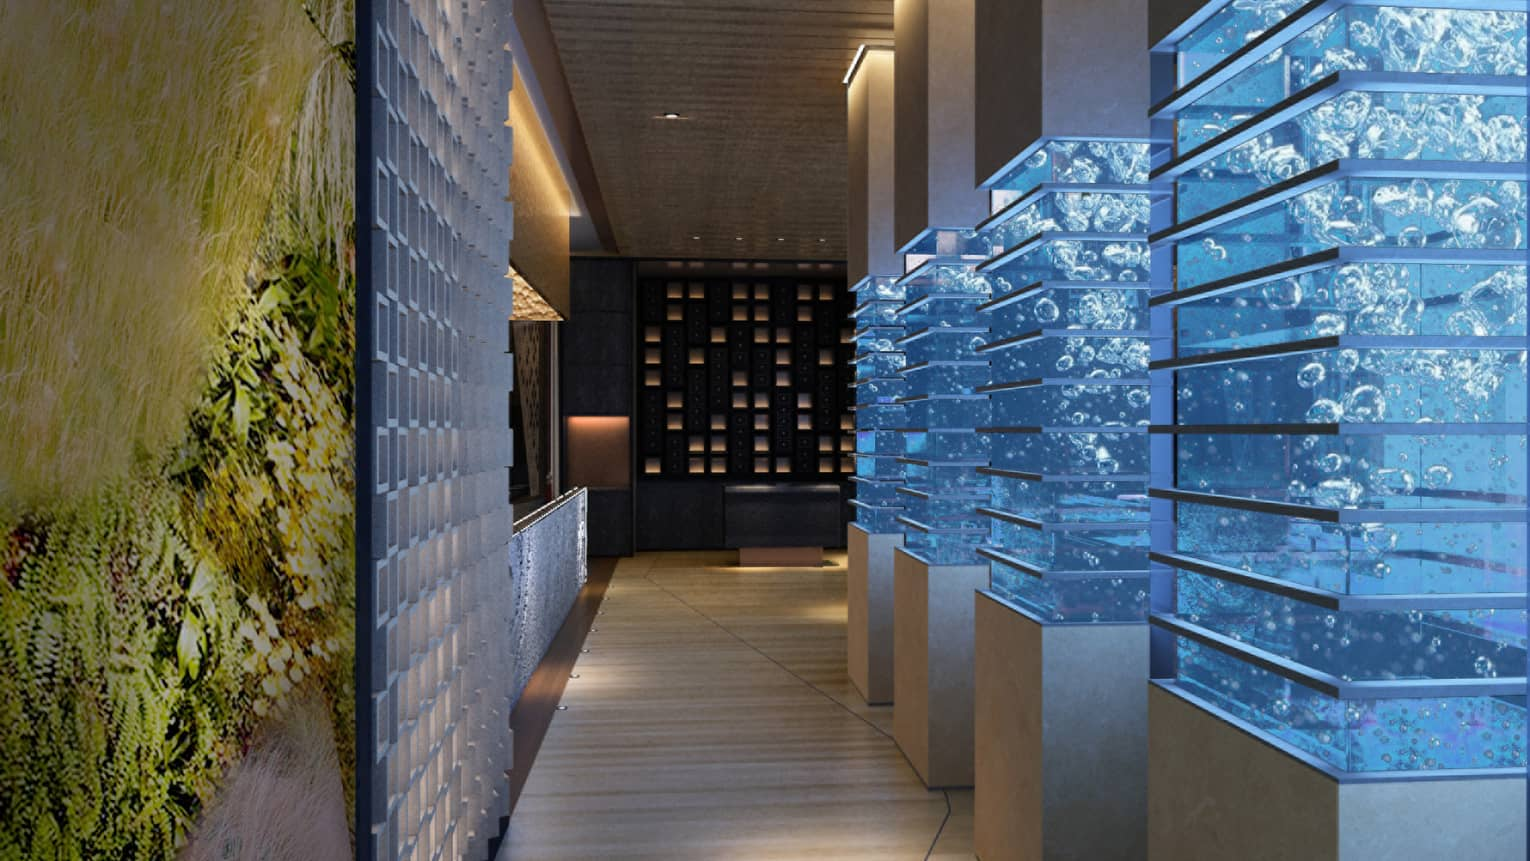 Modern pillars with glass, bubbles in dimly-lit hallway in Sintoho Restaurant